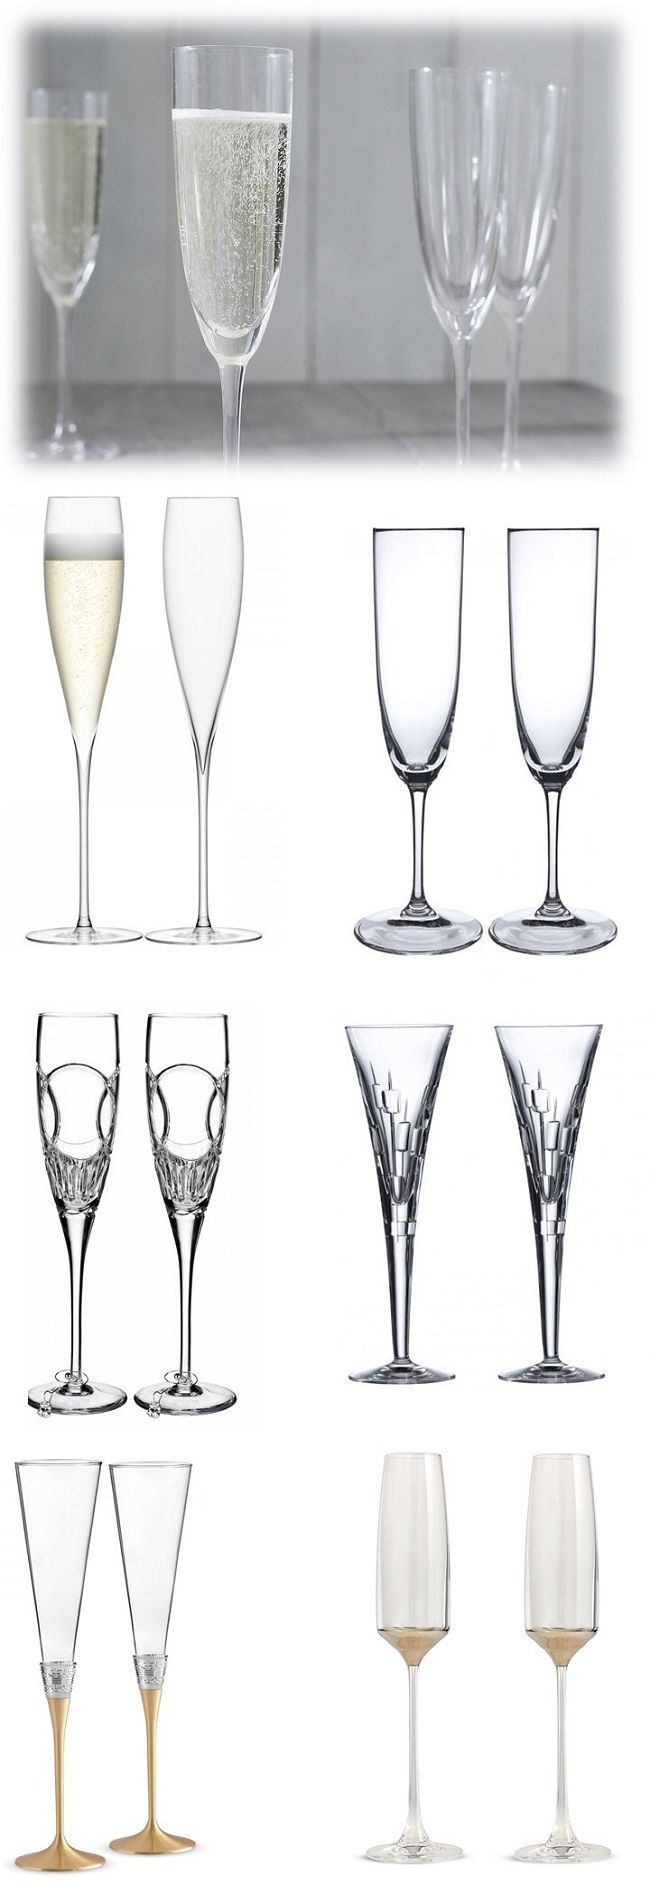 Toast Worthy Wedding Gift Champagne Flute Sets | Champagne flutes ...